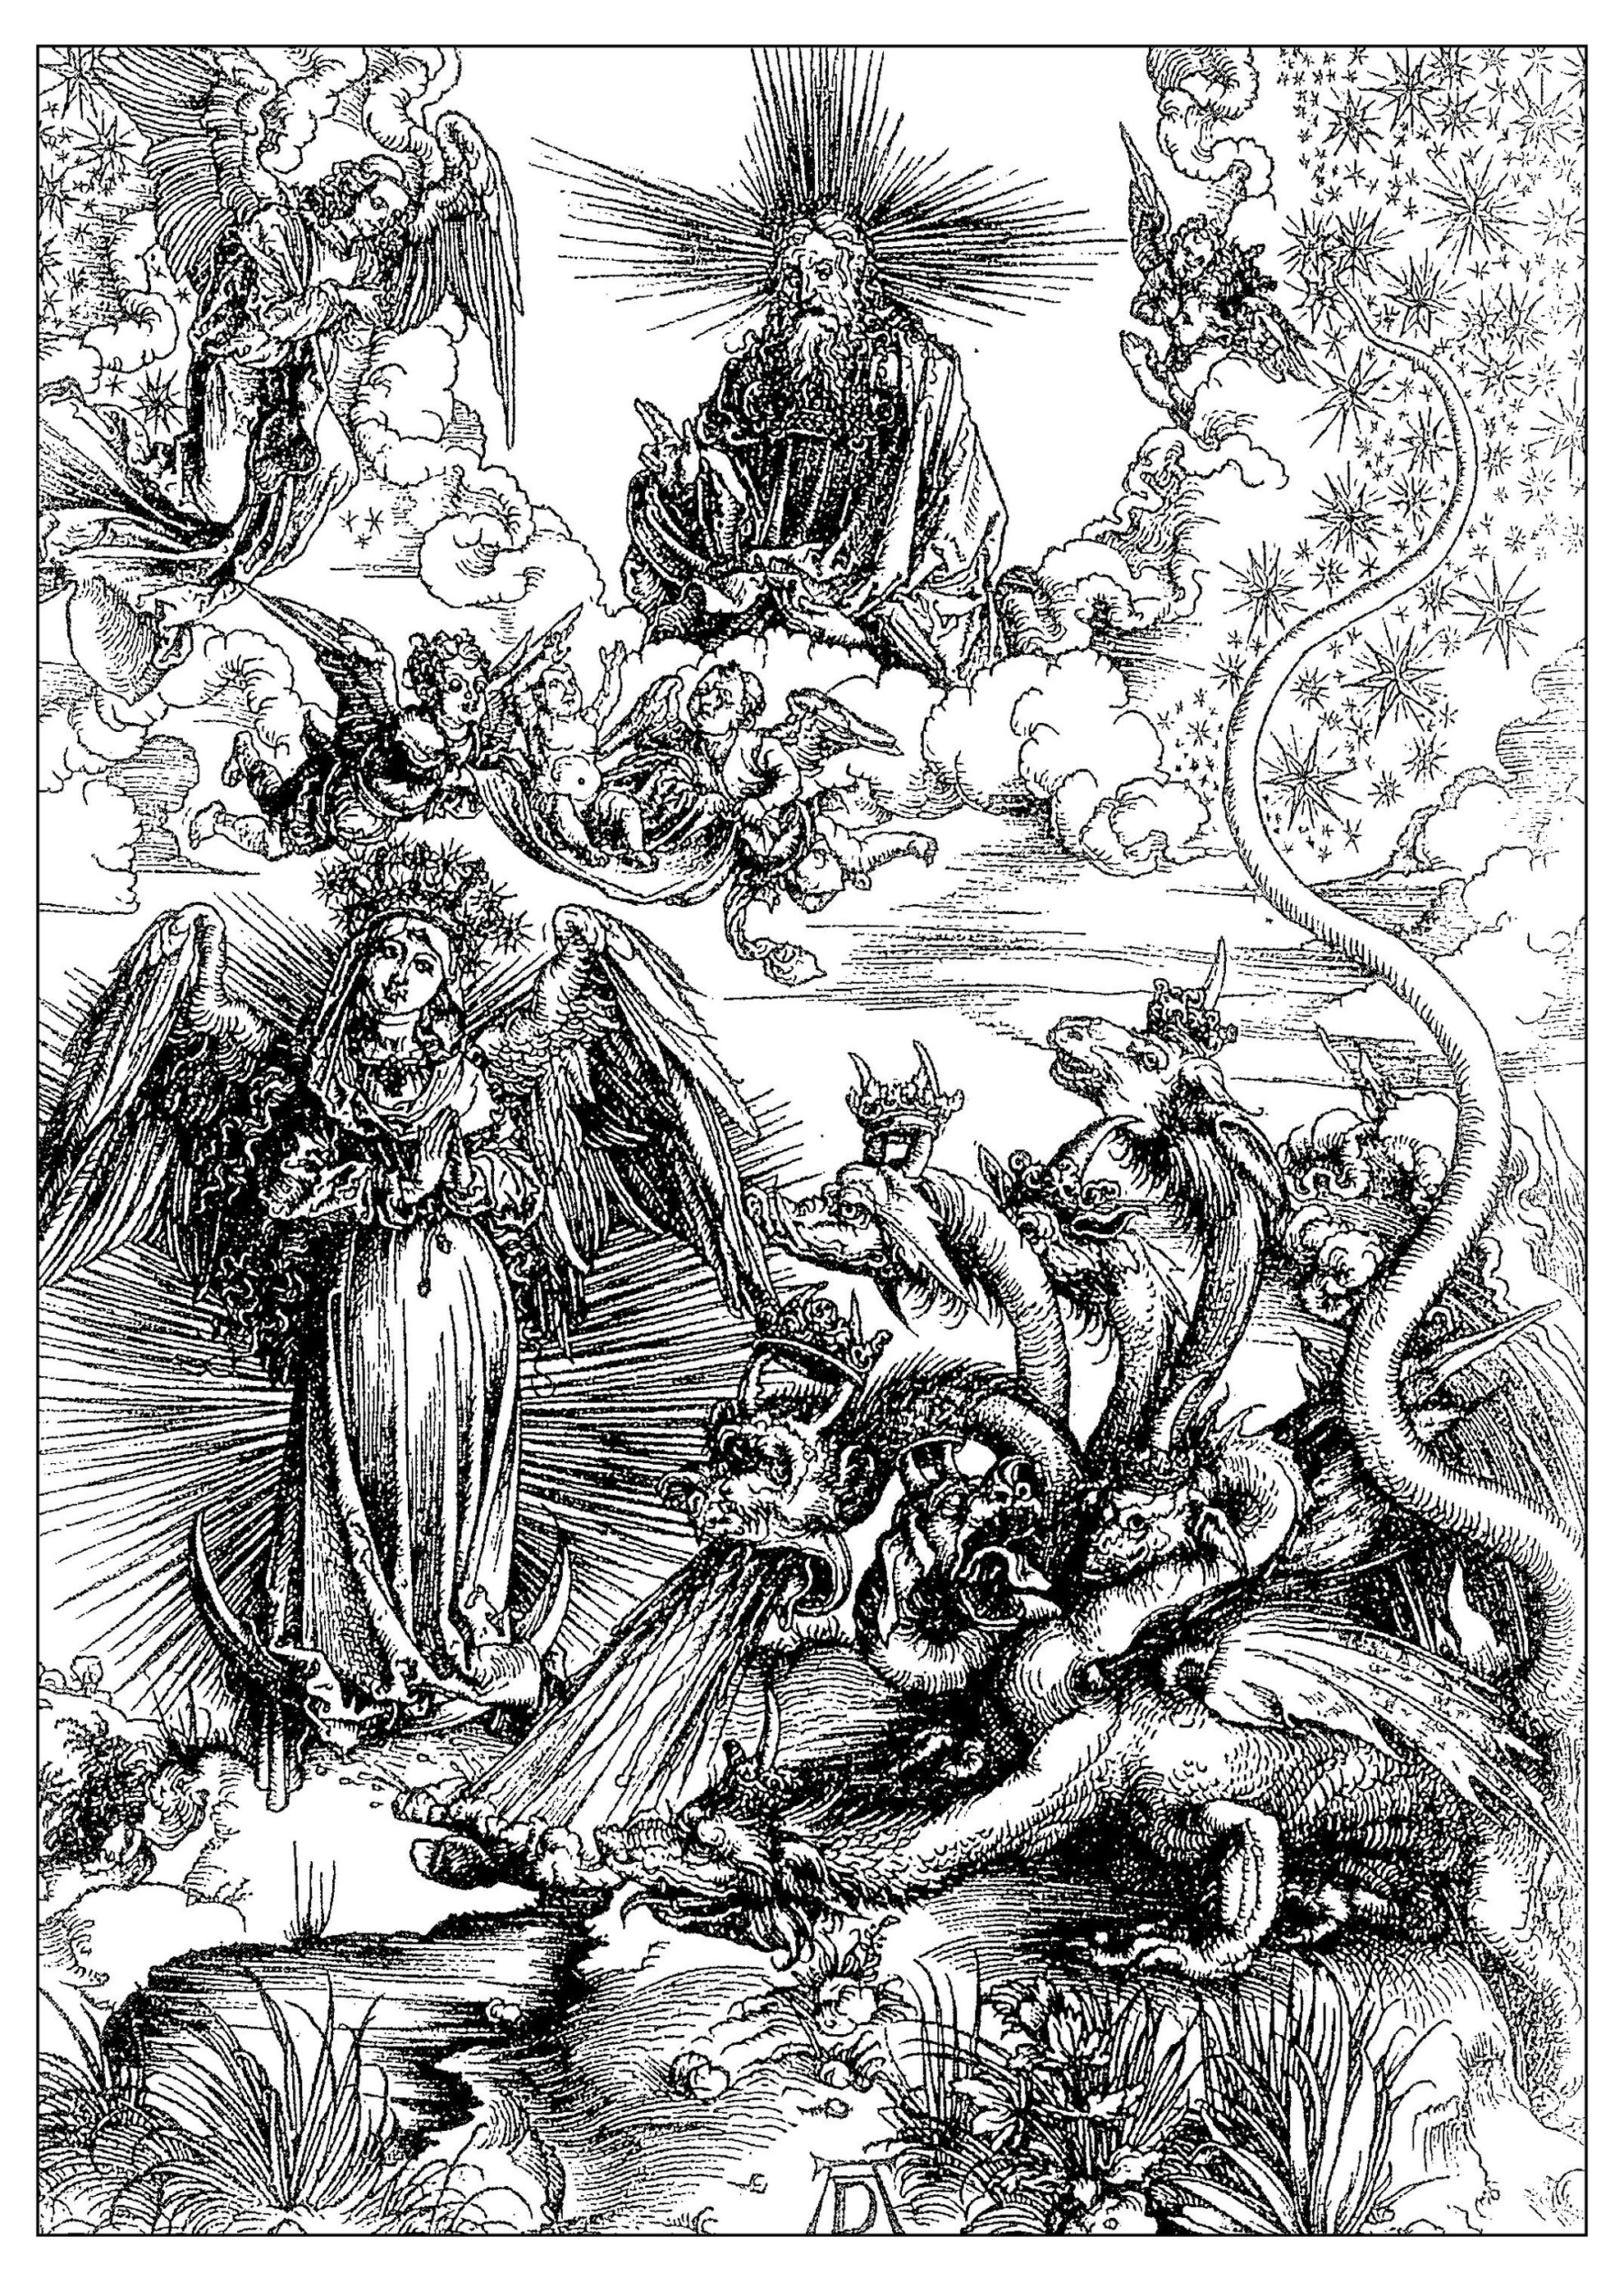 The woman of Apocalyps, engraving by Albrecht Dürer, around 1497